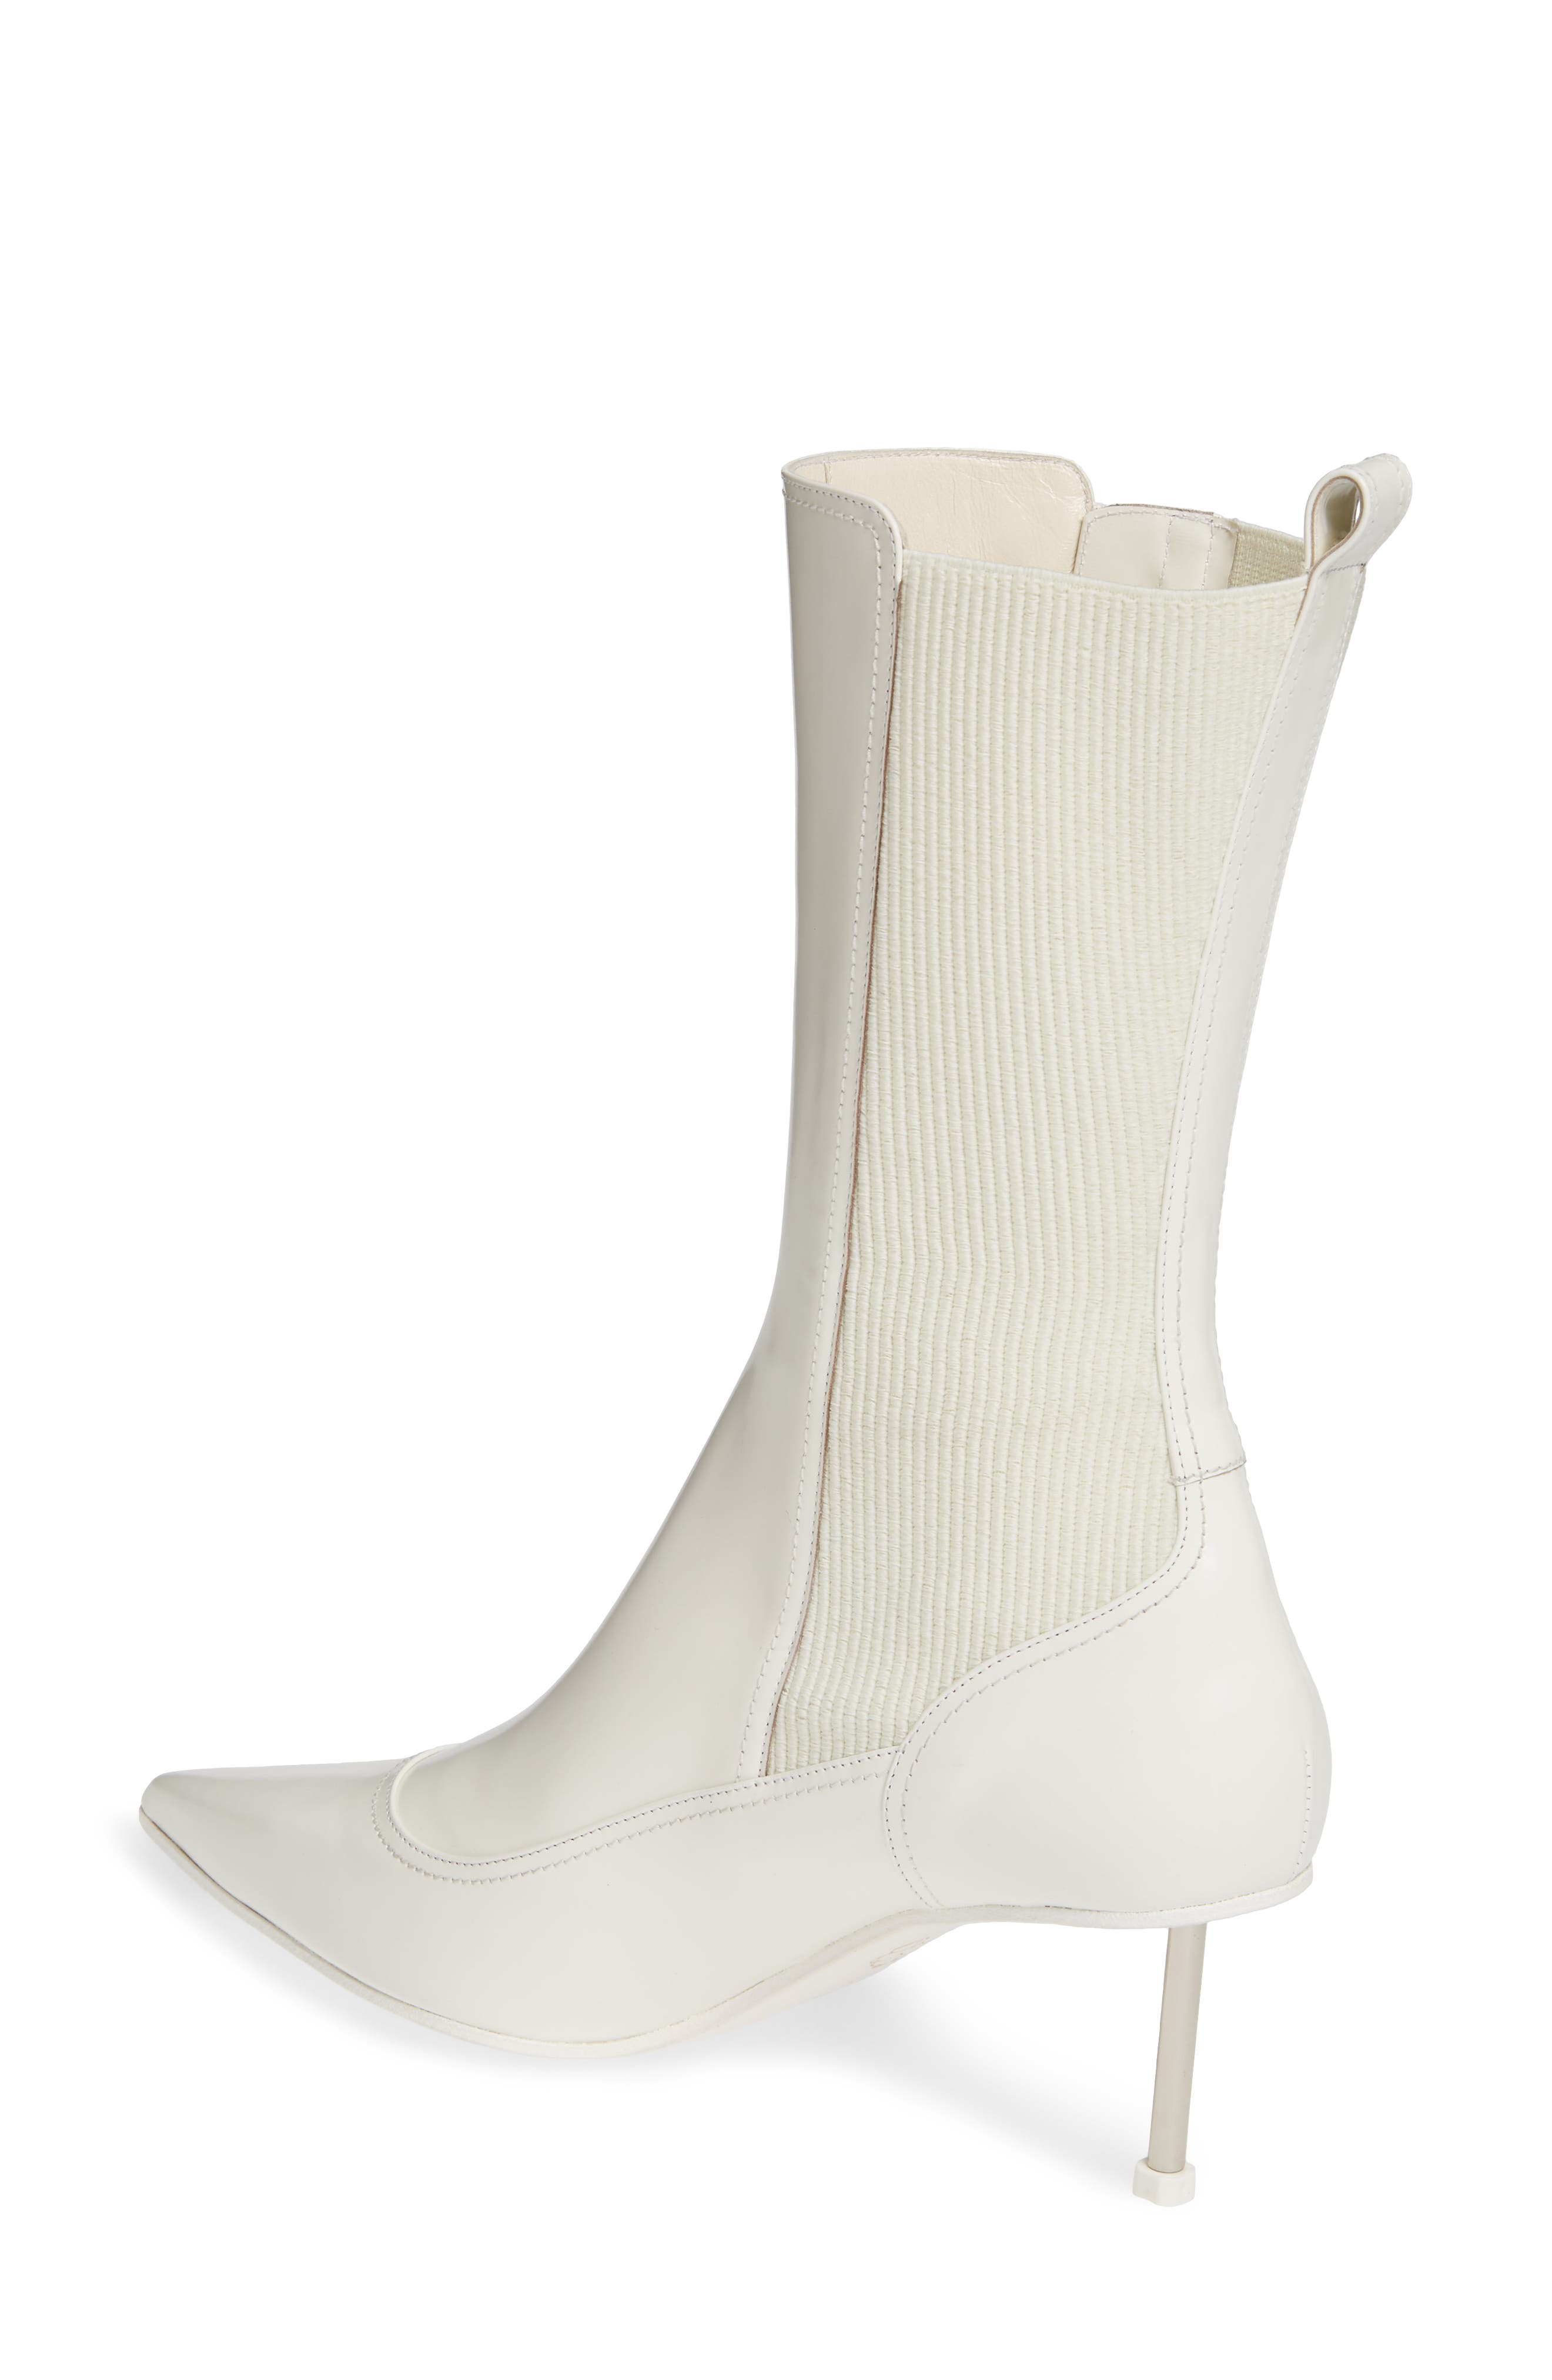 ALEXANDER MCQUEEN, Button Pointy Toe Boot, Alternate thumbnail 2, color, IVORY/ BLACK